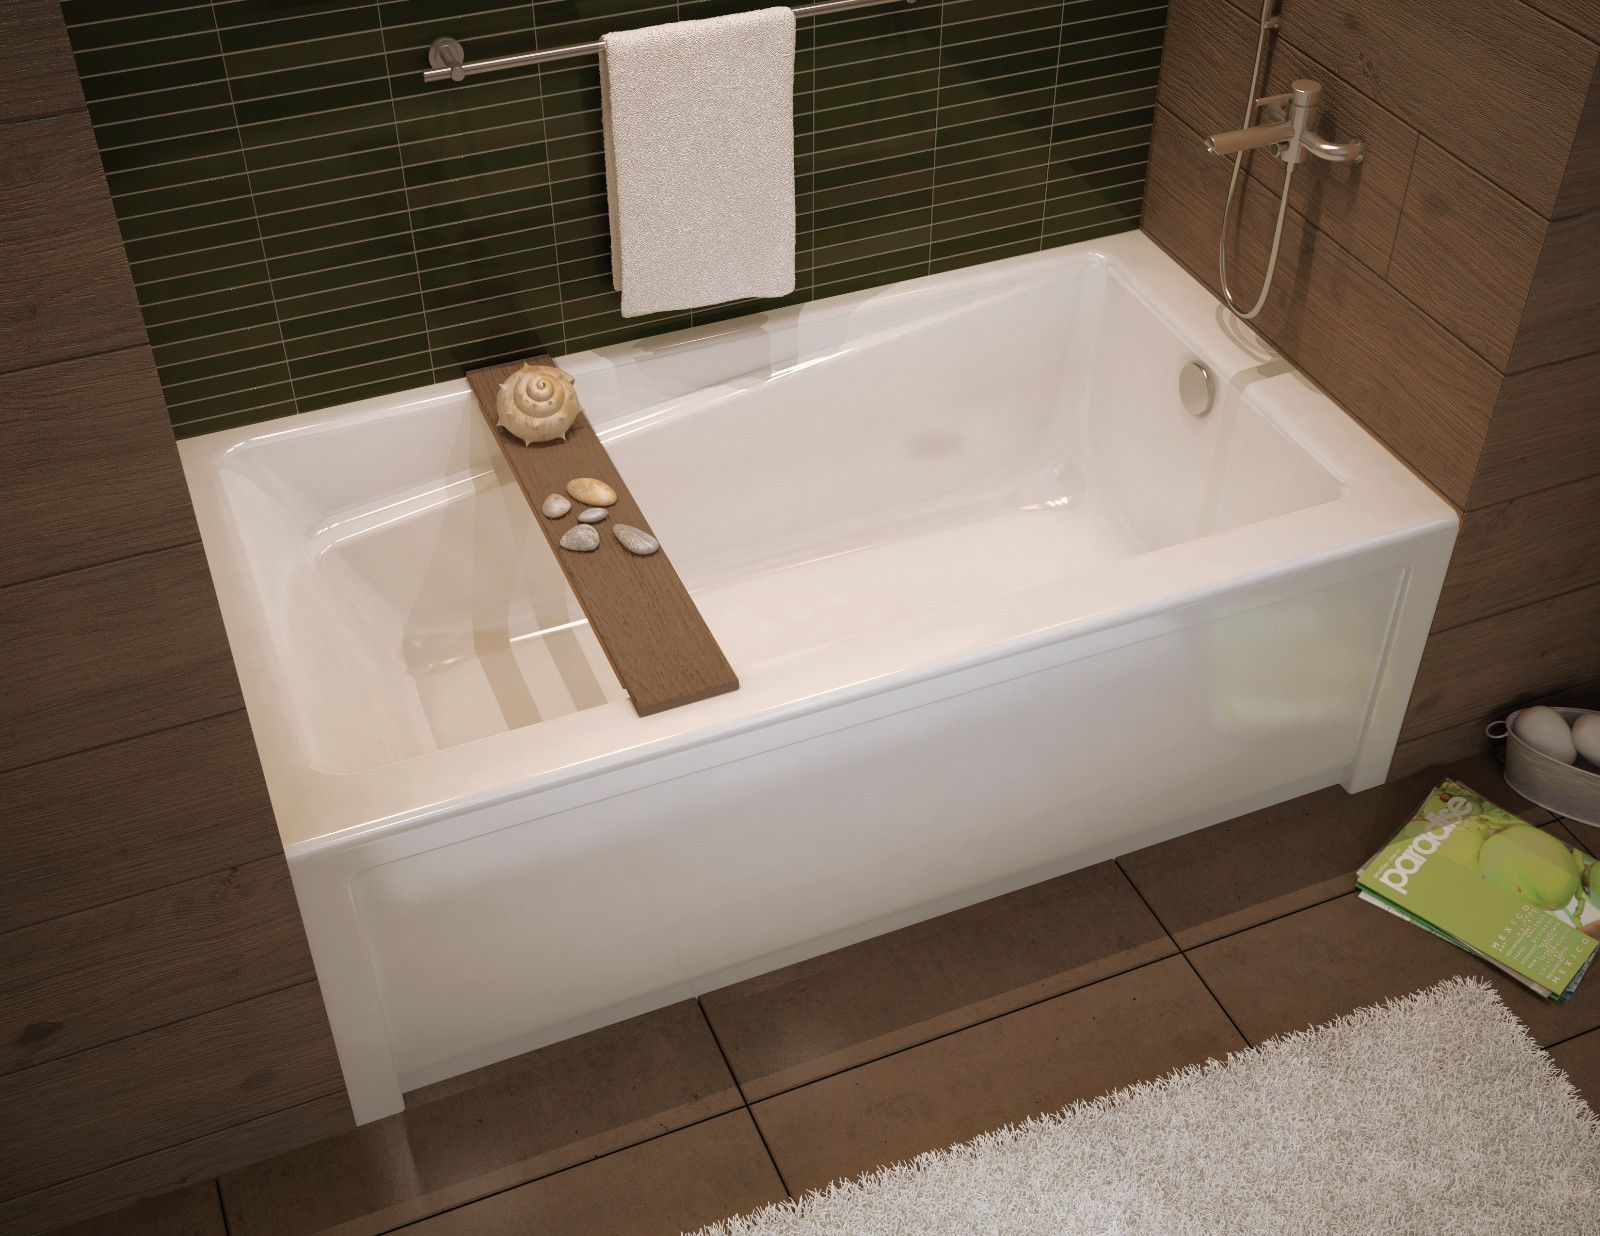 60 x 32 MAAX EXHIBIT SOAKER ALCOVE BATHTUB ACRYLIC MODERN DESIGN ...